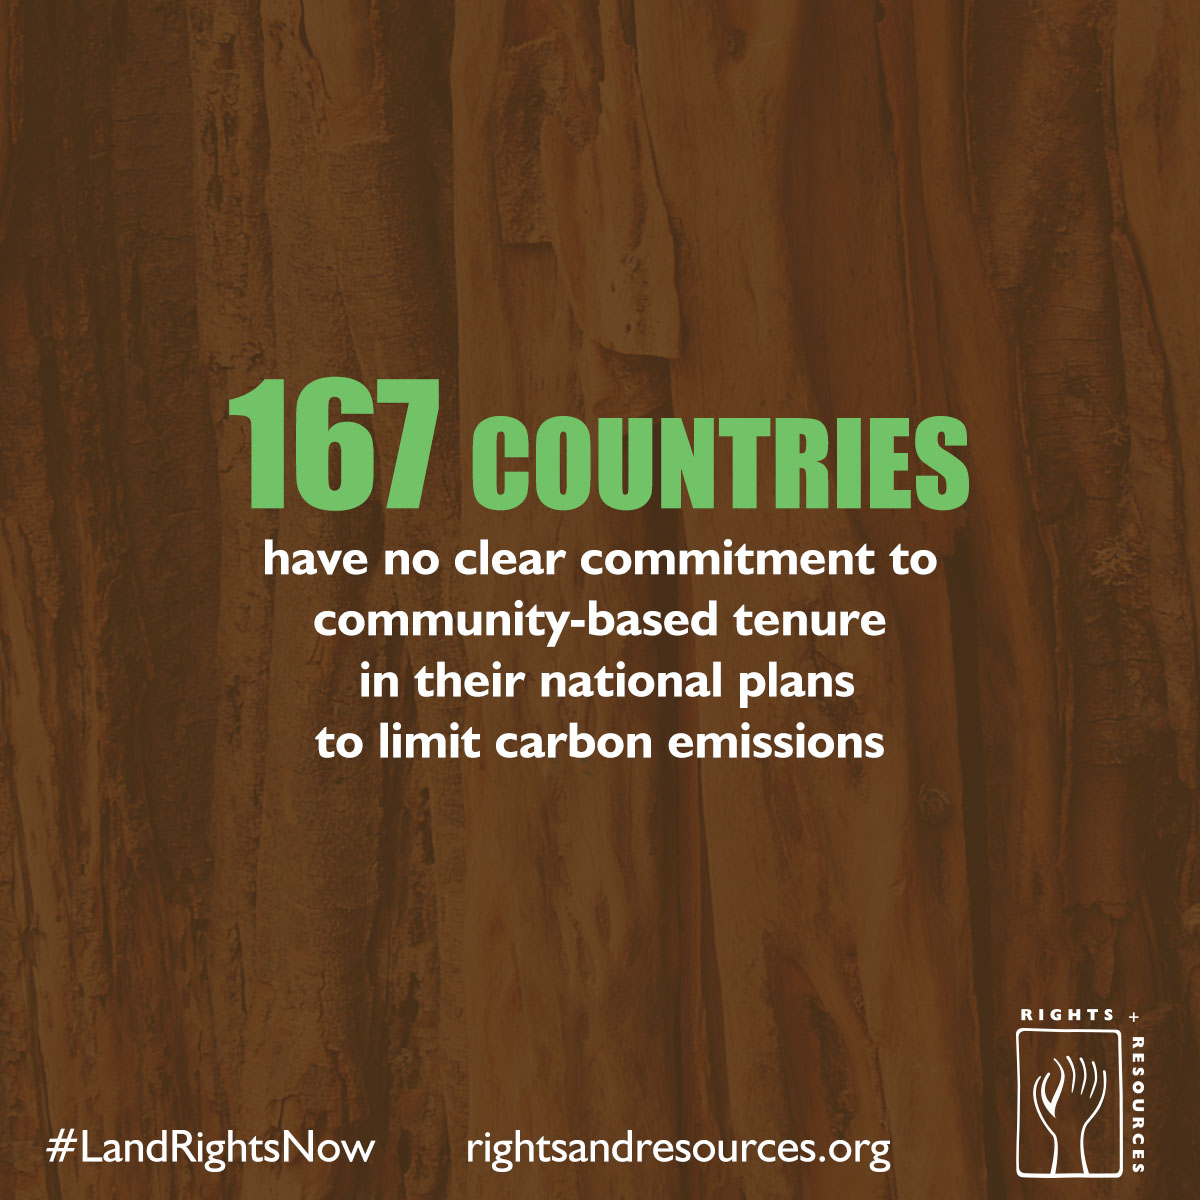 RRI Analysis   Indigenous Peoples & Local Community Tenure in the INDCs: Status and Recommendations   167 countries did not clearly commit to community tenure rights as climate change mitigation strategy